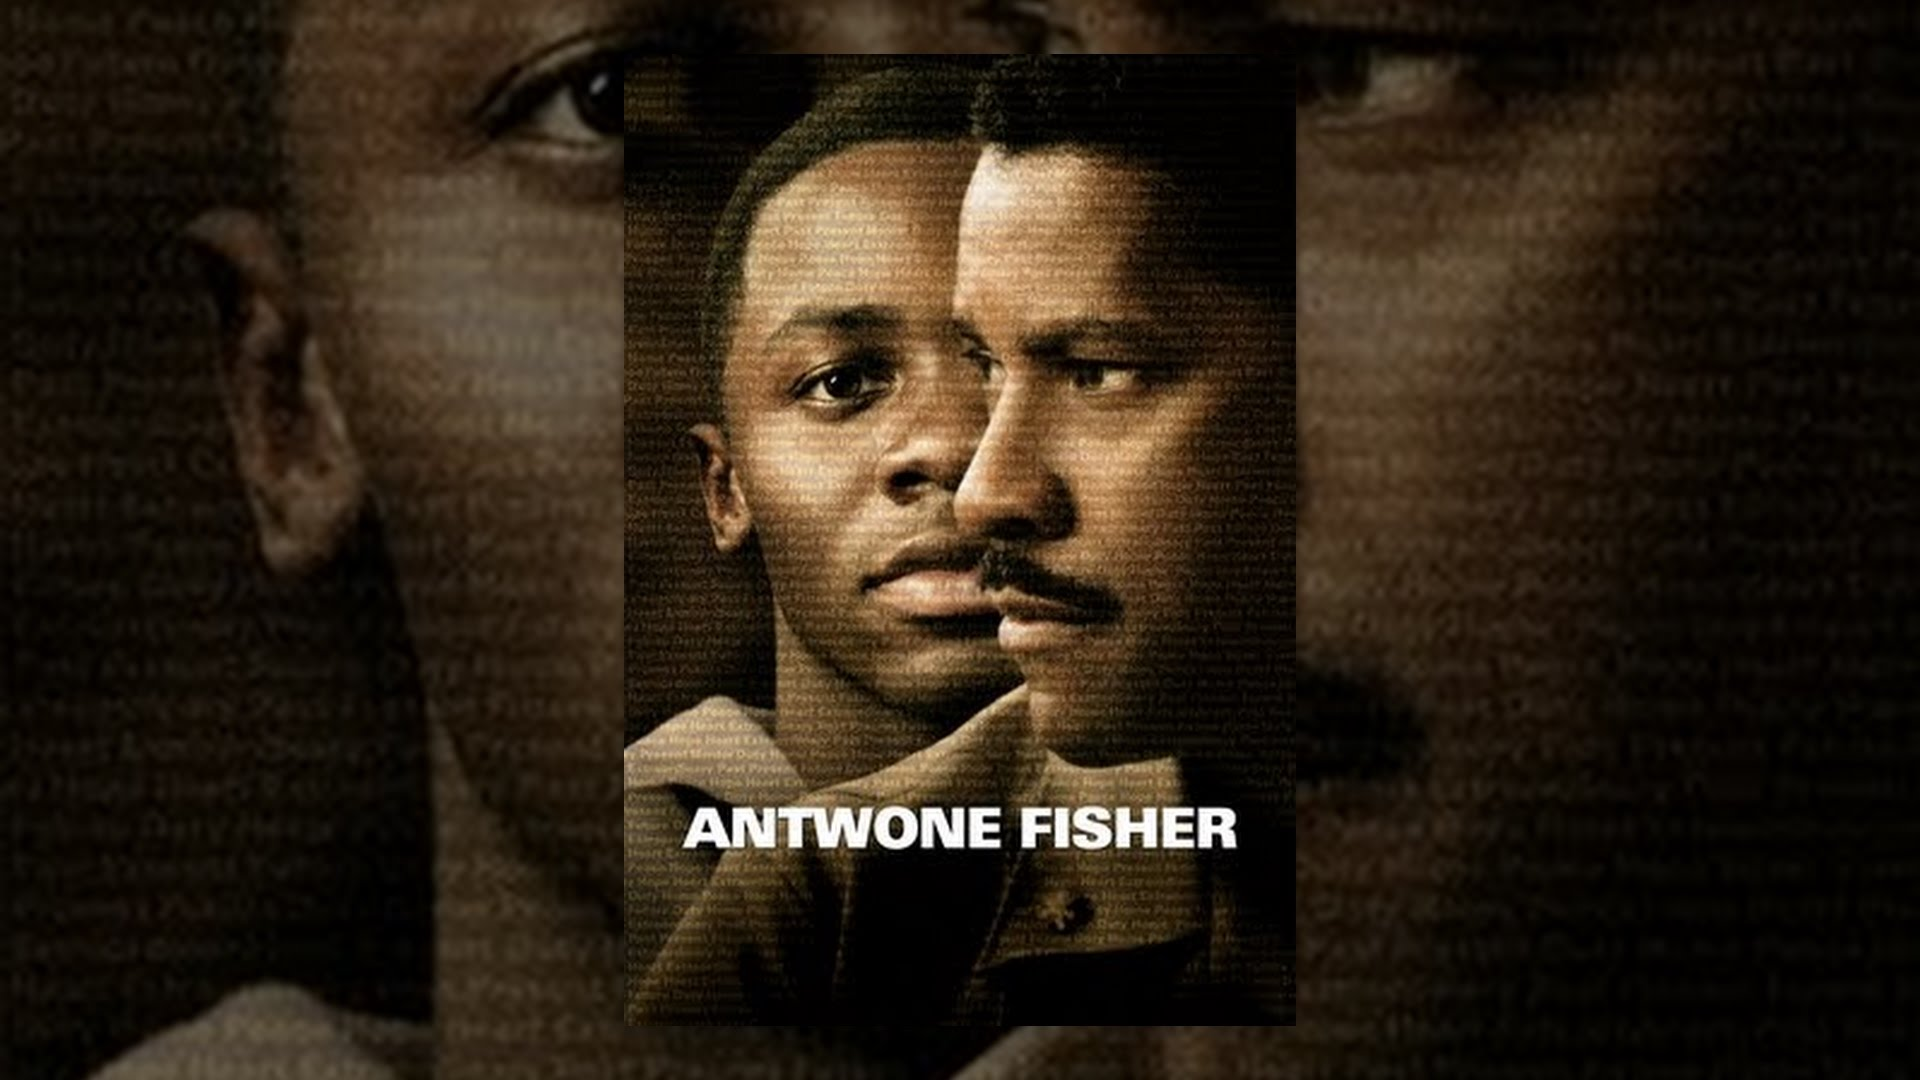 biography antwone fisher Antwone quenton fisher (born august 3, 1959) is an american director, screenwriter, author, and film producer his 2001 autobiographical book finding fish was a new york times best seller  the 2002 film antwone fisher was written by fisher and directed by denzel washington.